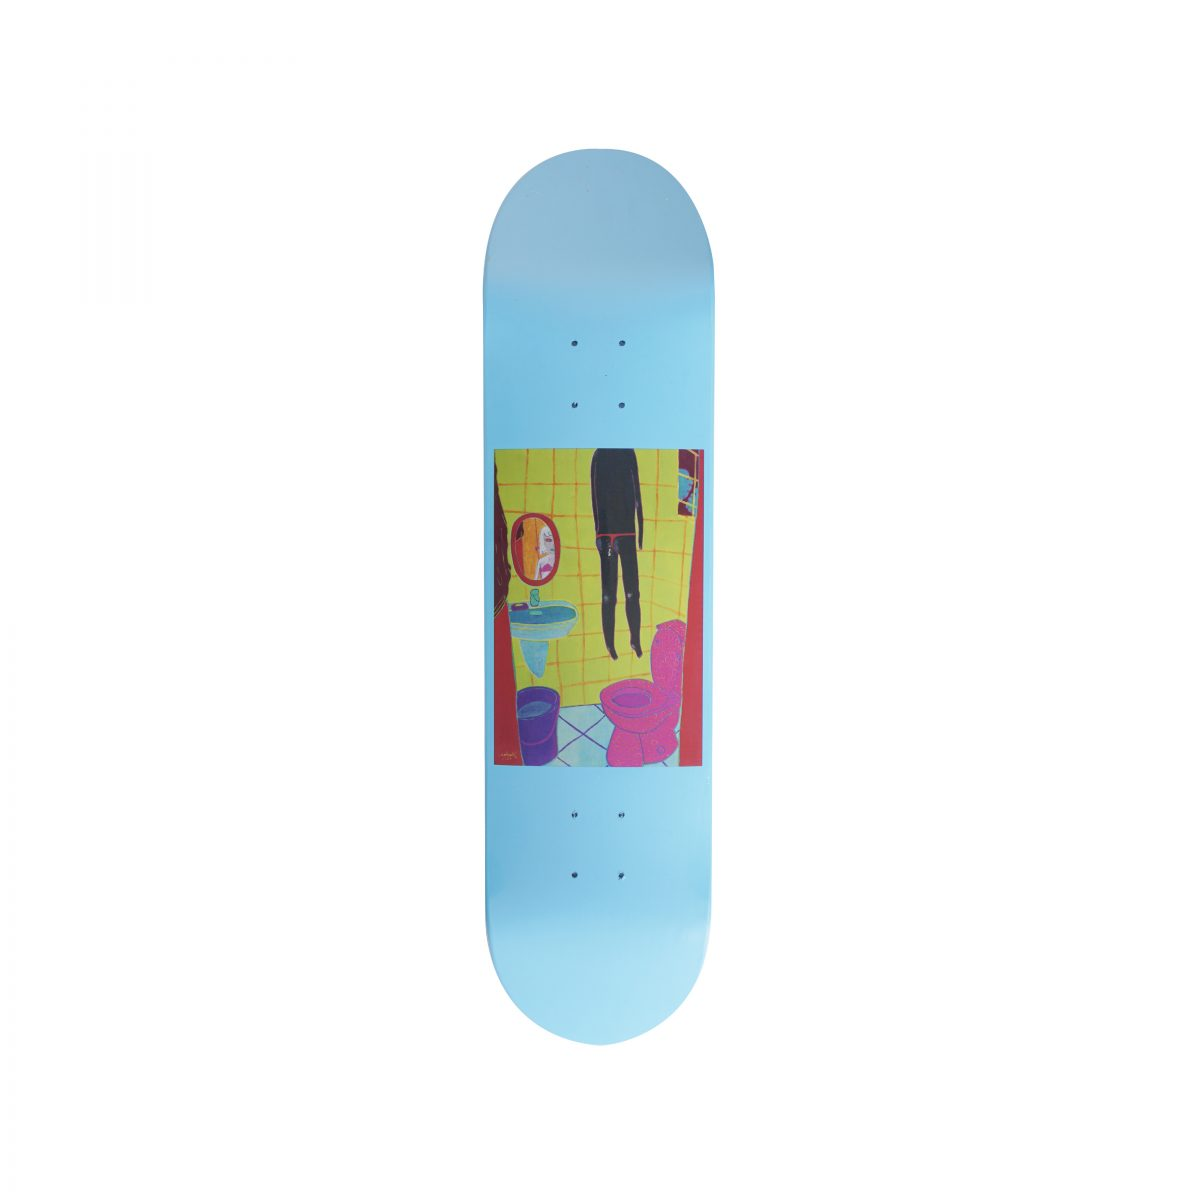 YEOKAA FOR PROGRESS® S/S 2018 SKATE DECK BLUE